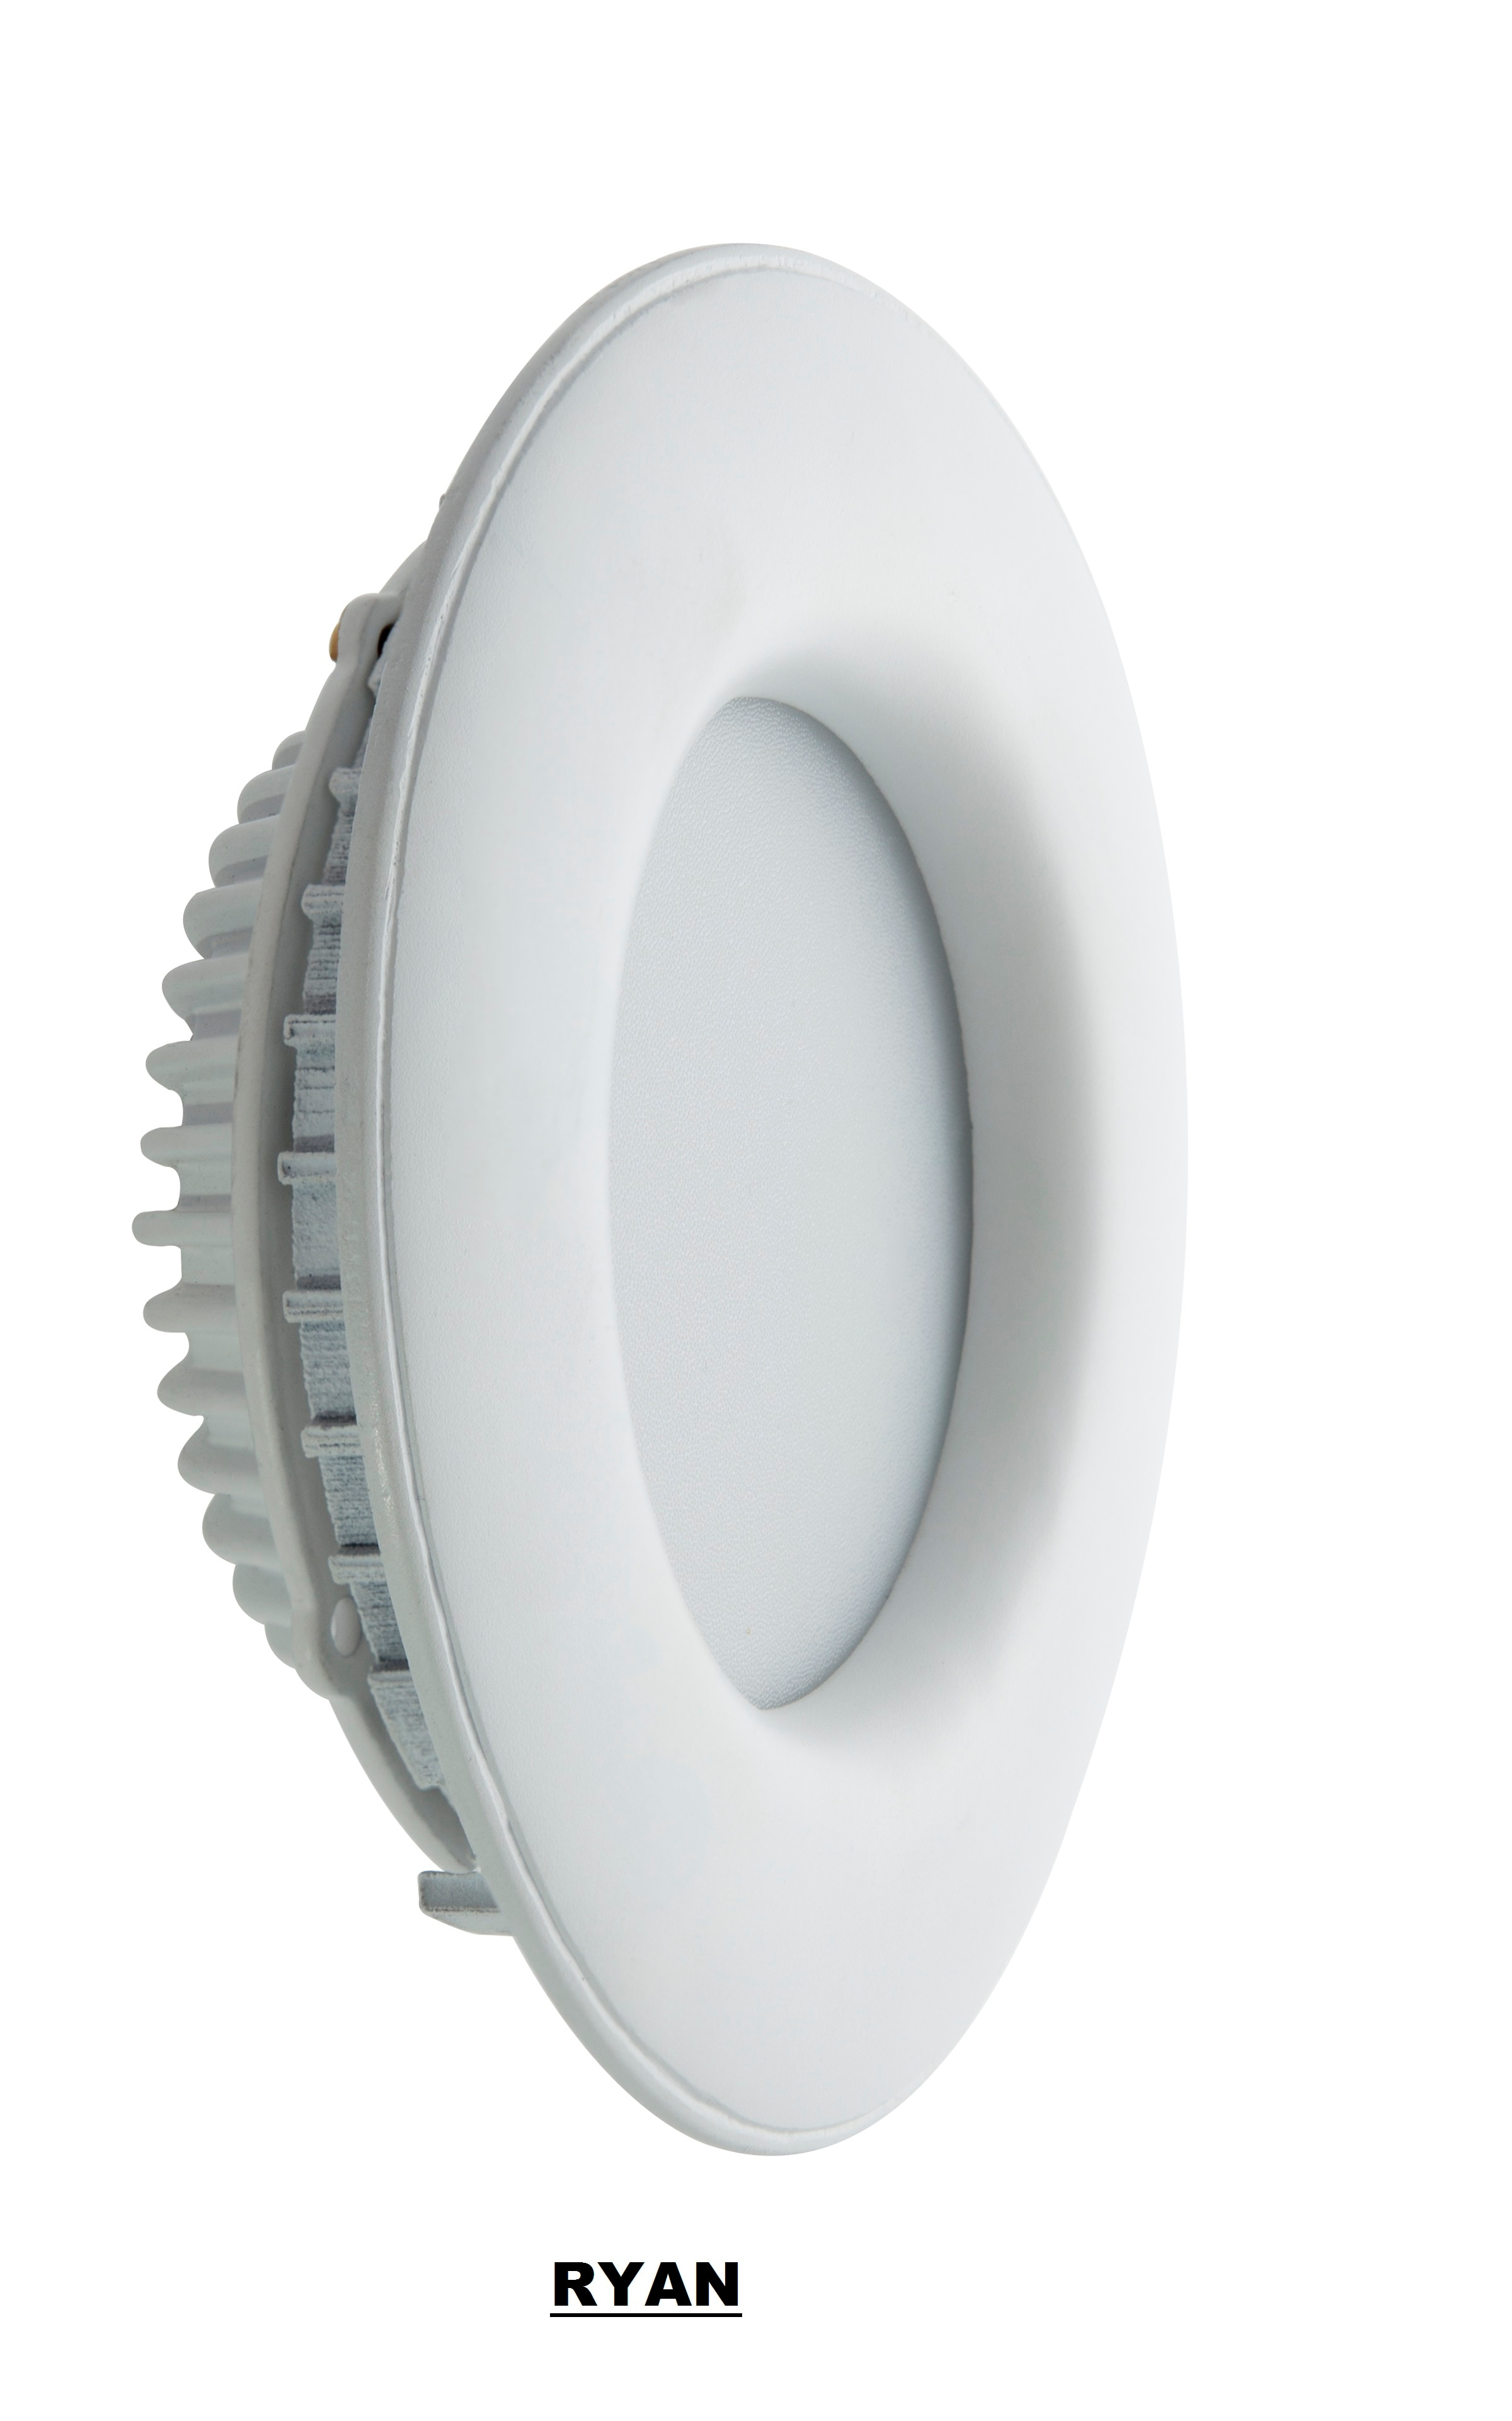 LED Lights for homes in Delhi  Modernize lighting of your homes with highly efficient LED technology consuming less power than traditional CFLs & Bulbs to give a boost to your savings.